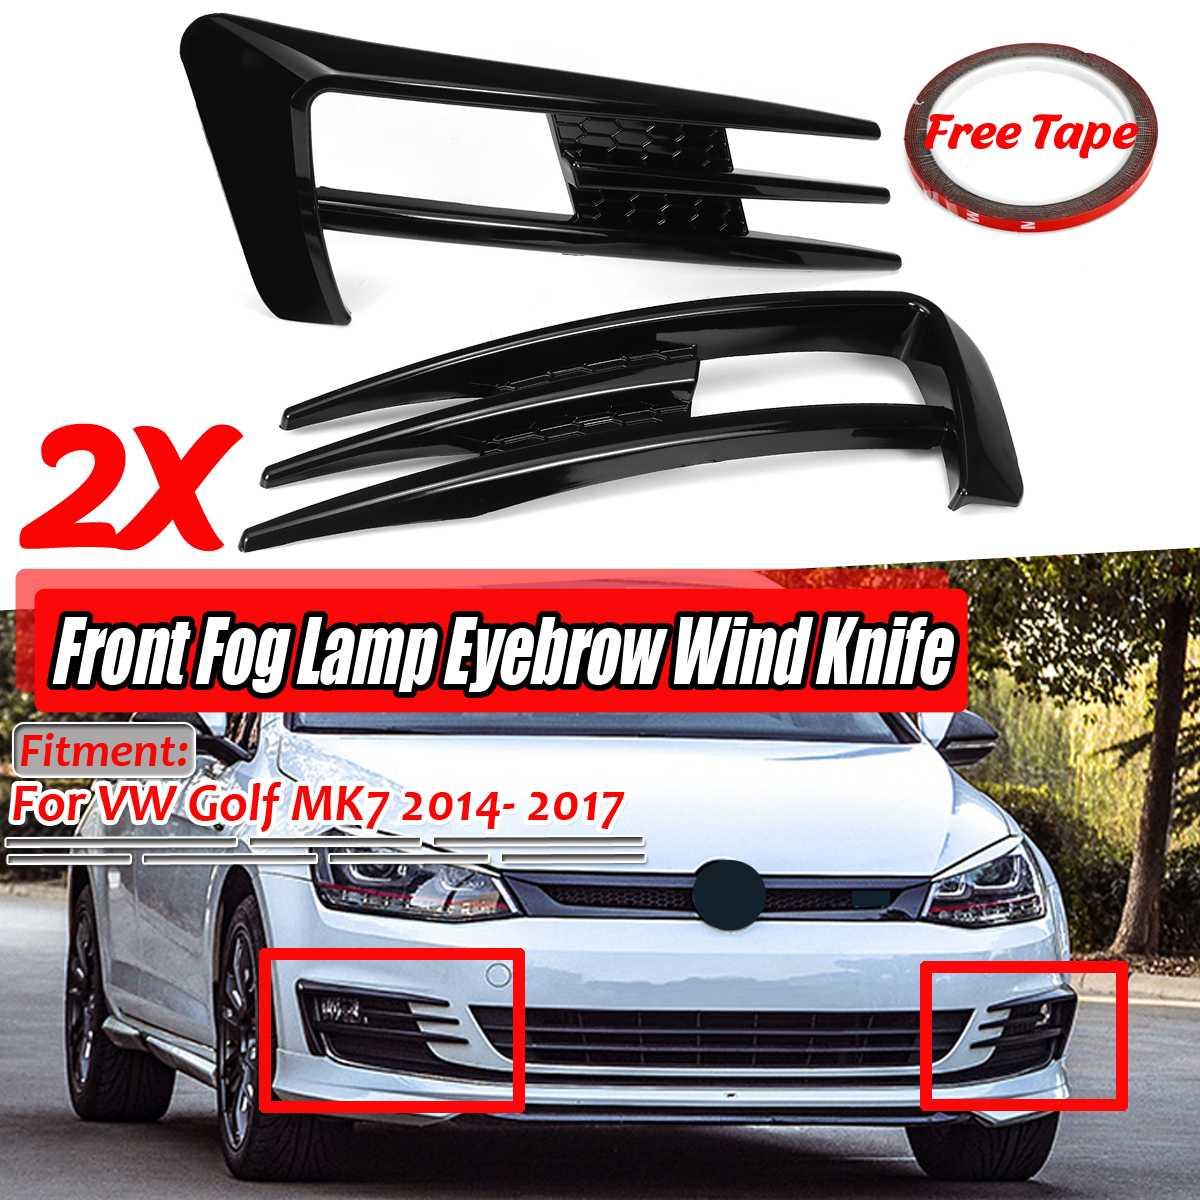 A Pair ABS Car Front Fog Lamp Eyebrow Wind Knife Cover Trim For VW For Golf MK7 2014 2015 2016 2017 Fog Light Eyebrow Eye Lid